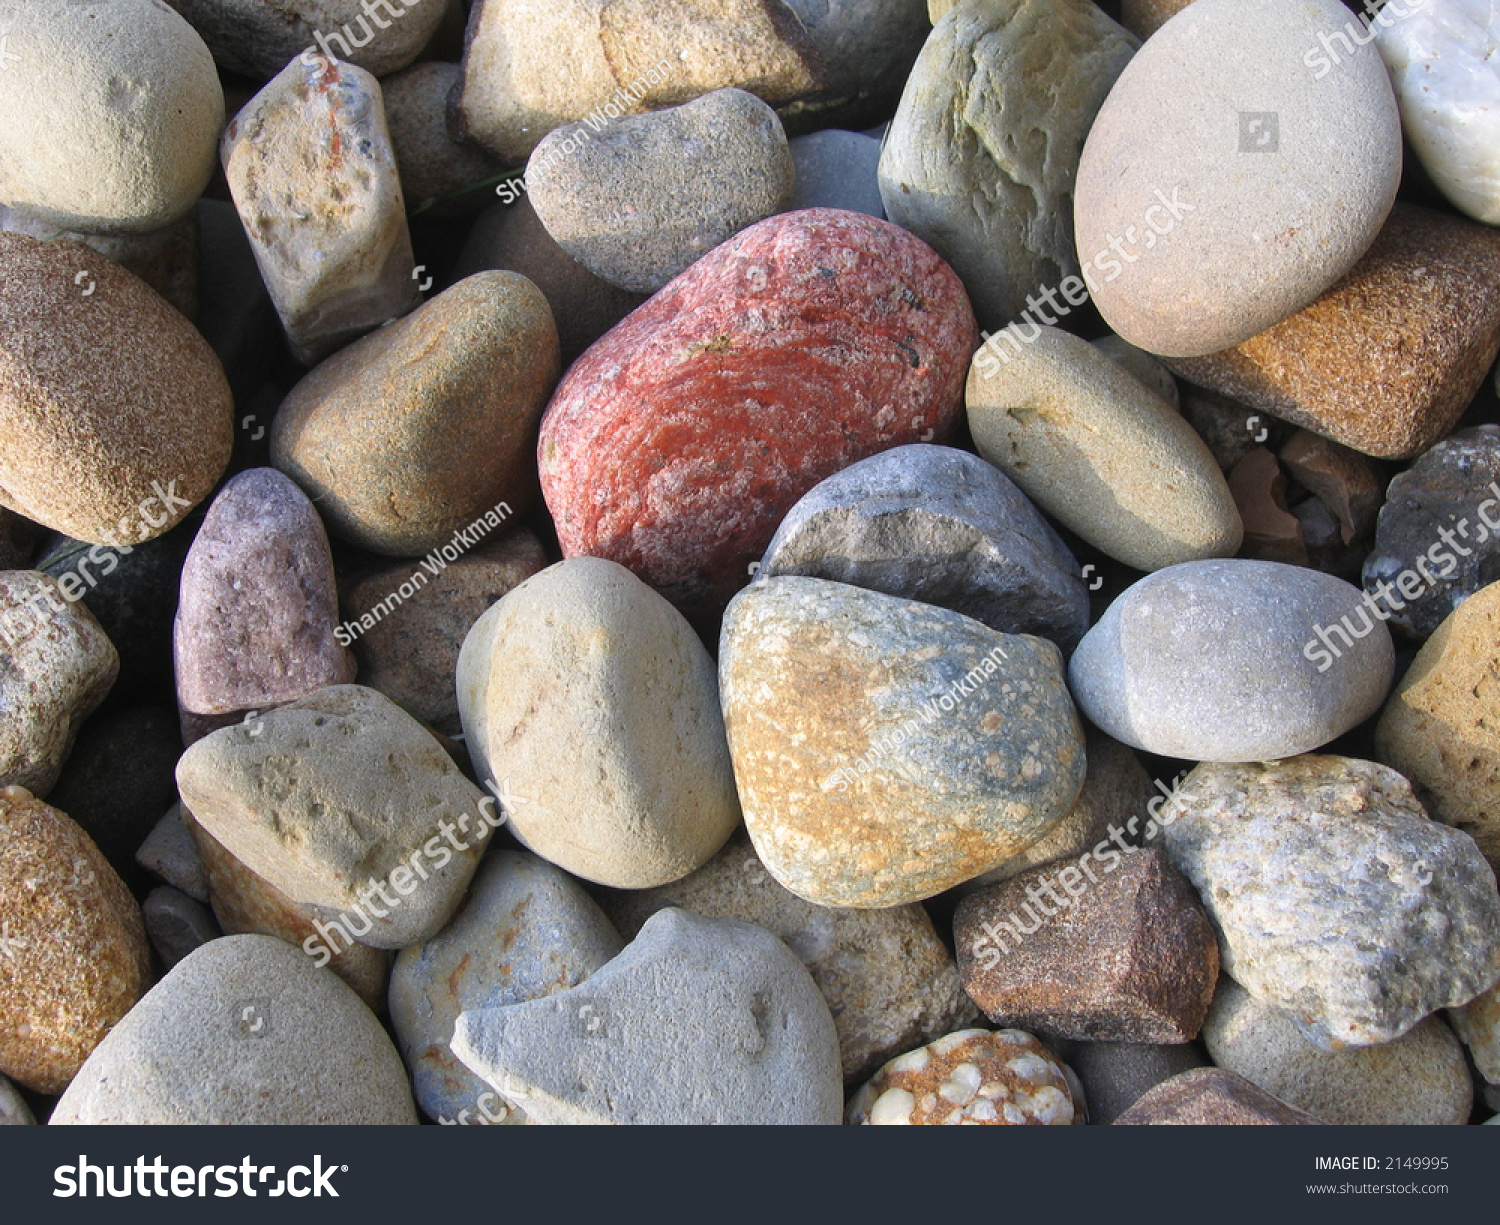 a bed of colorful landscaping rocks of many shapes and sizes